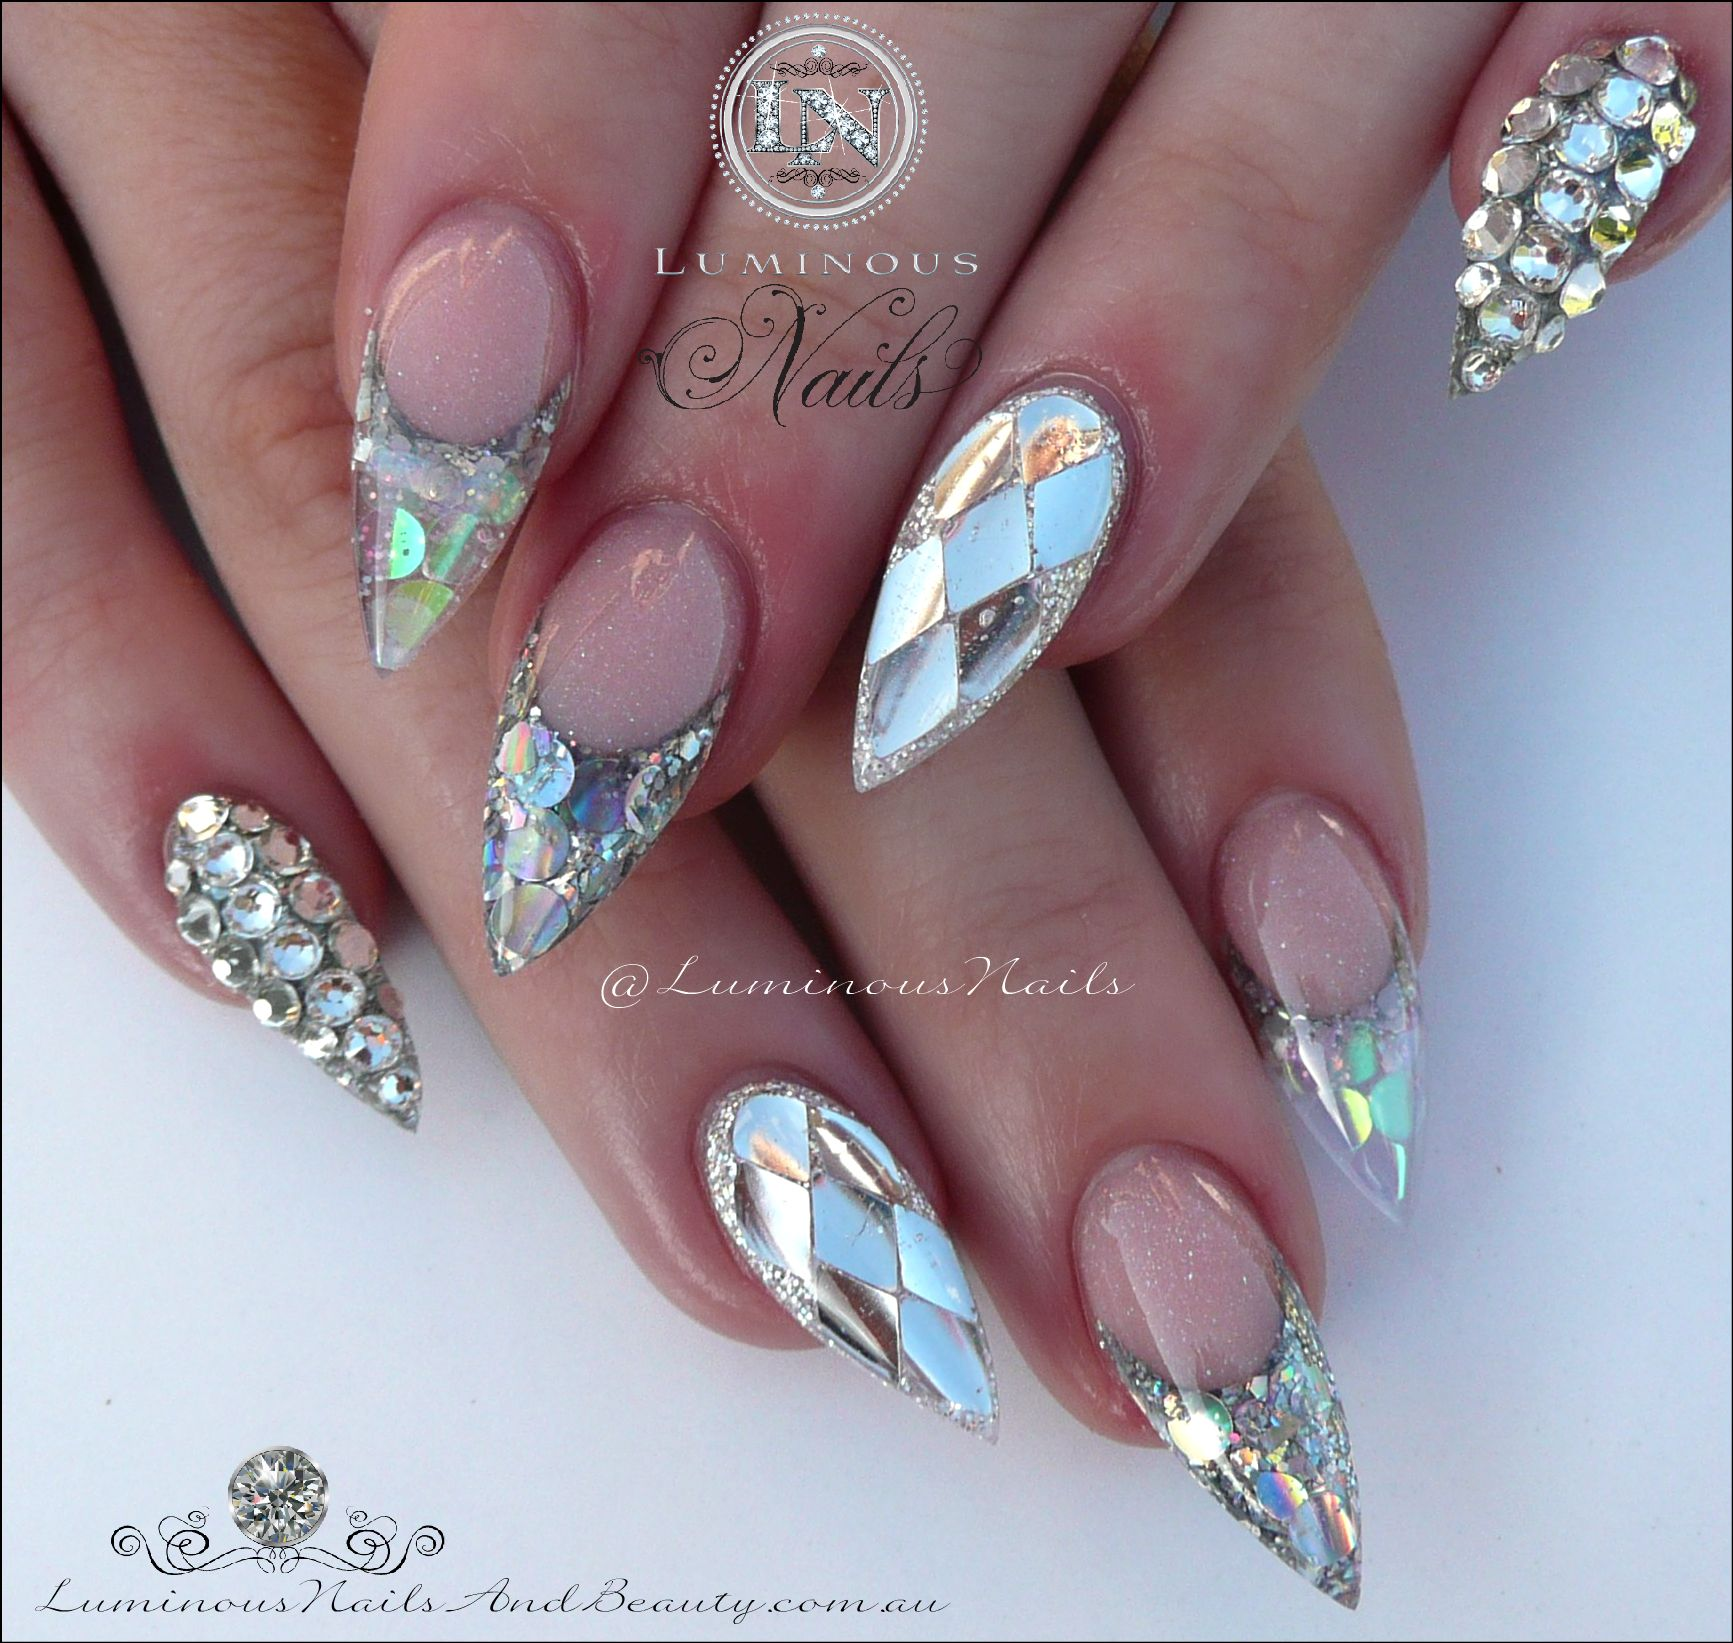 Blue glitter ombr 233 stiletto nails - Bling Nails